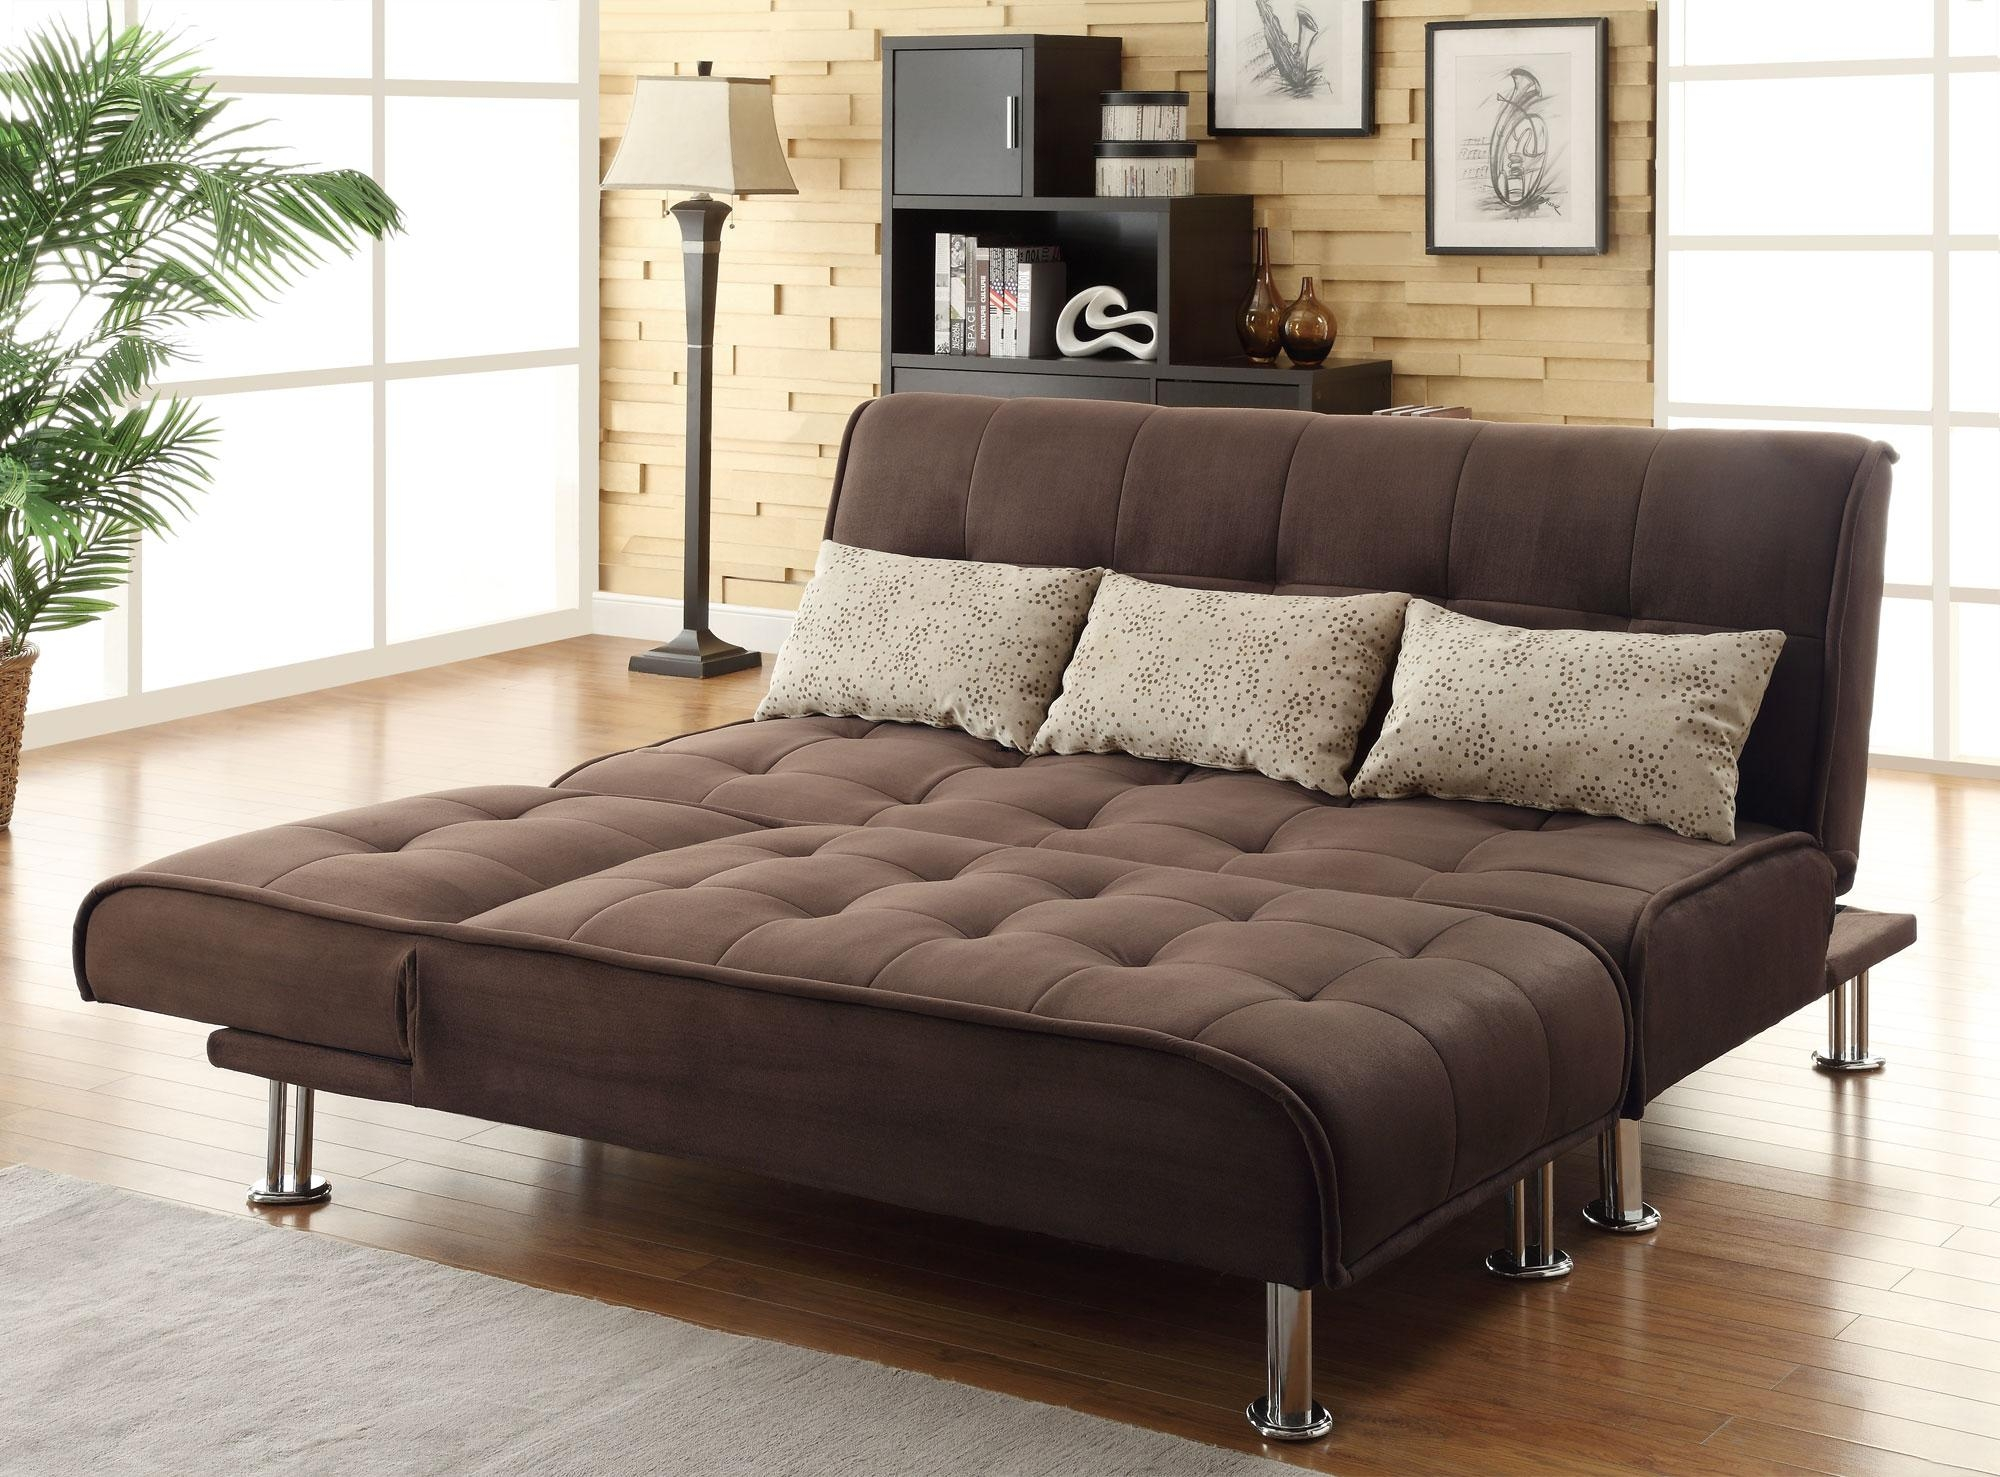 Great Futon Style Sofa Beds 44 For Home Pictures With Futon Style Within Fulton Sofa Beds (View 19 of 21)